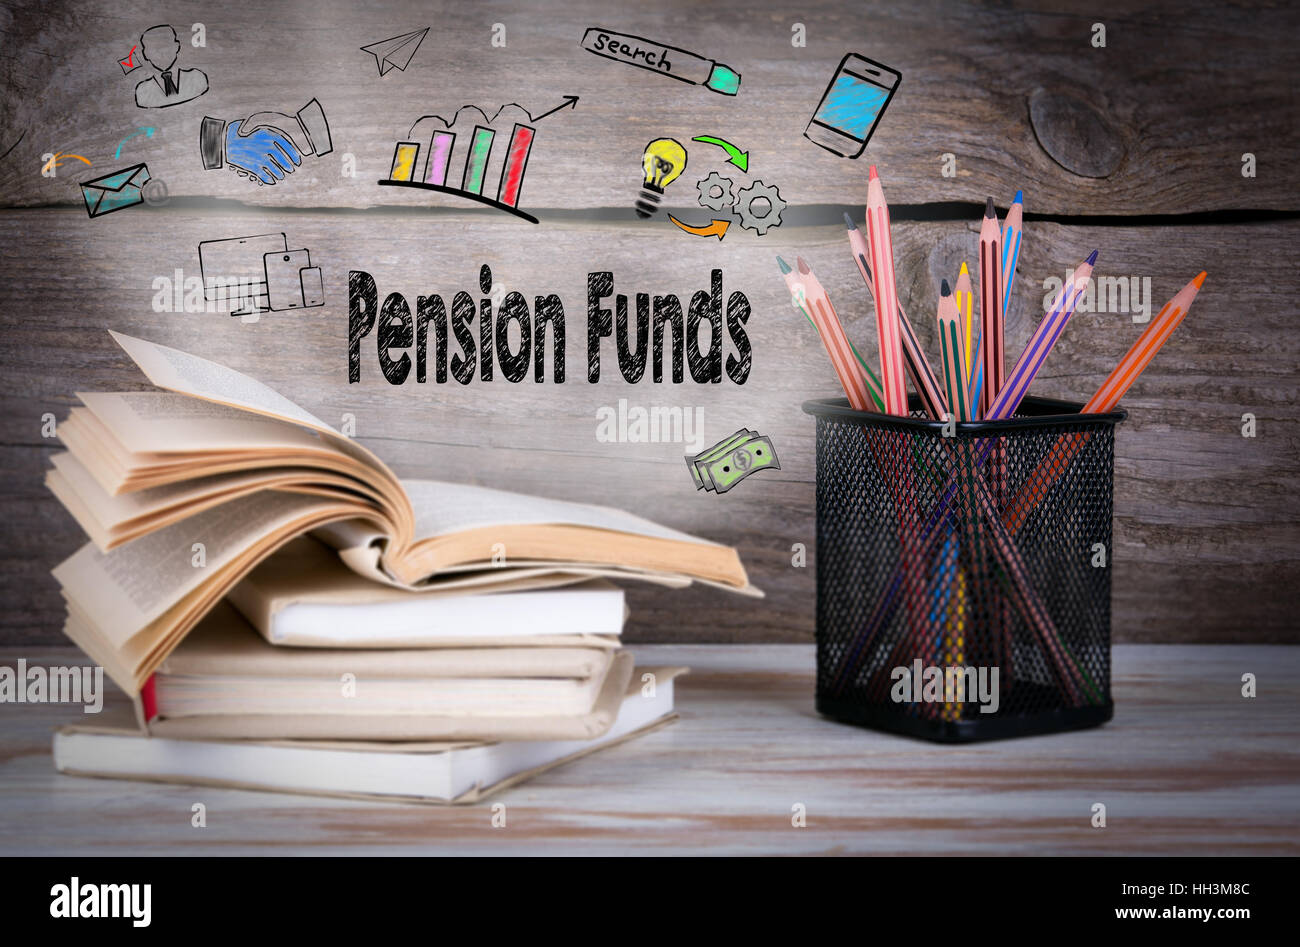 Pension Funds Concept. Stack of books and pencils on the wooden table. - Stock Image